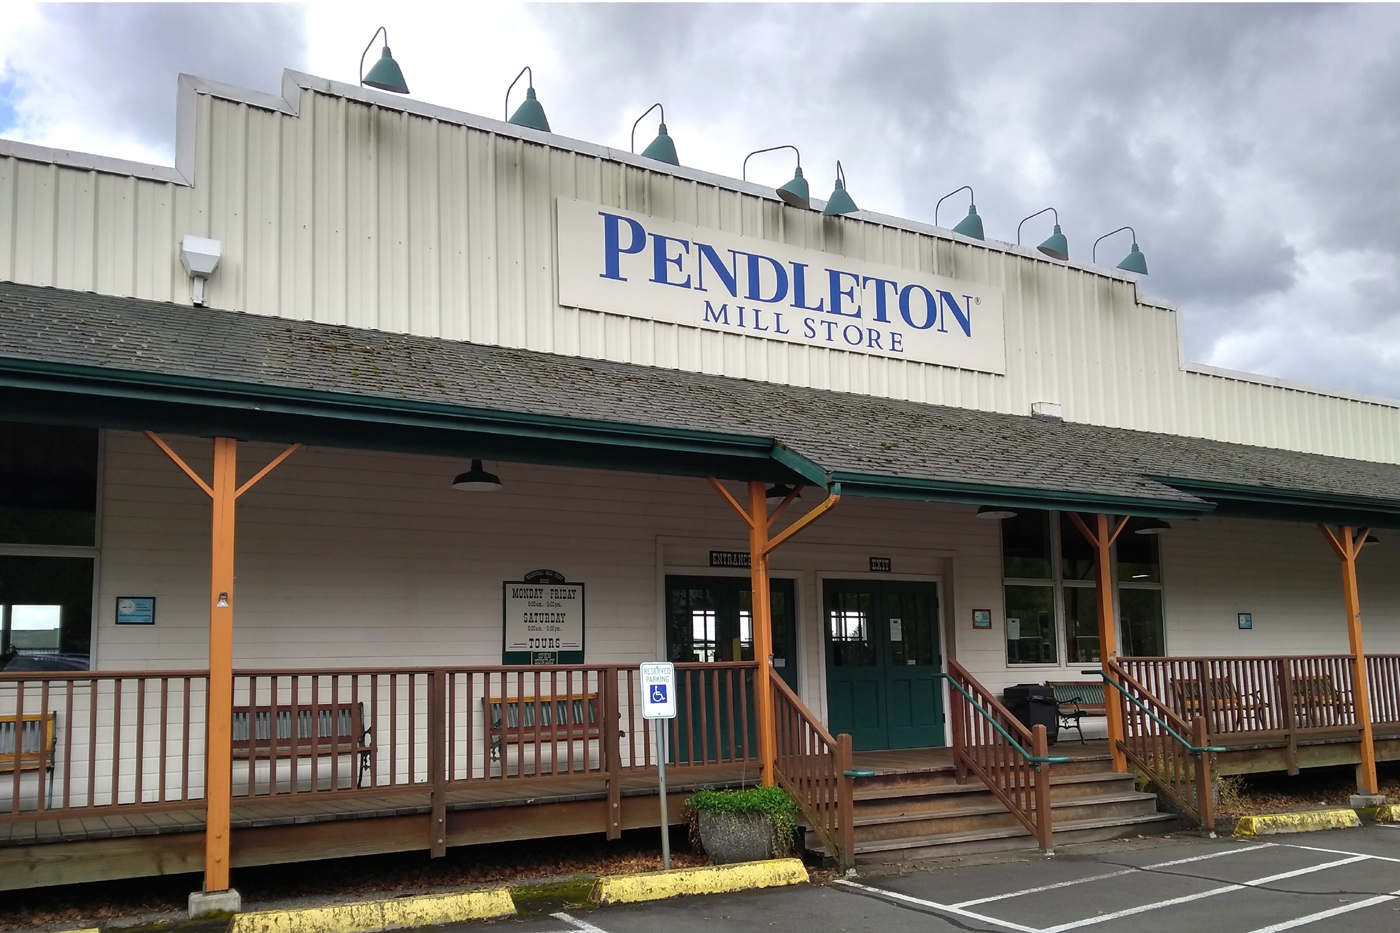 The Pendleton Mill factory and store in Washougal, Washington.